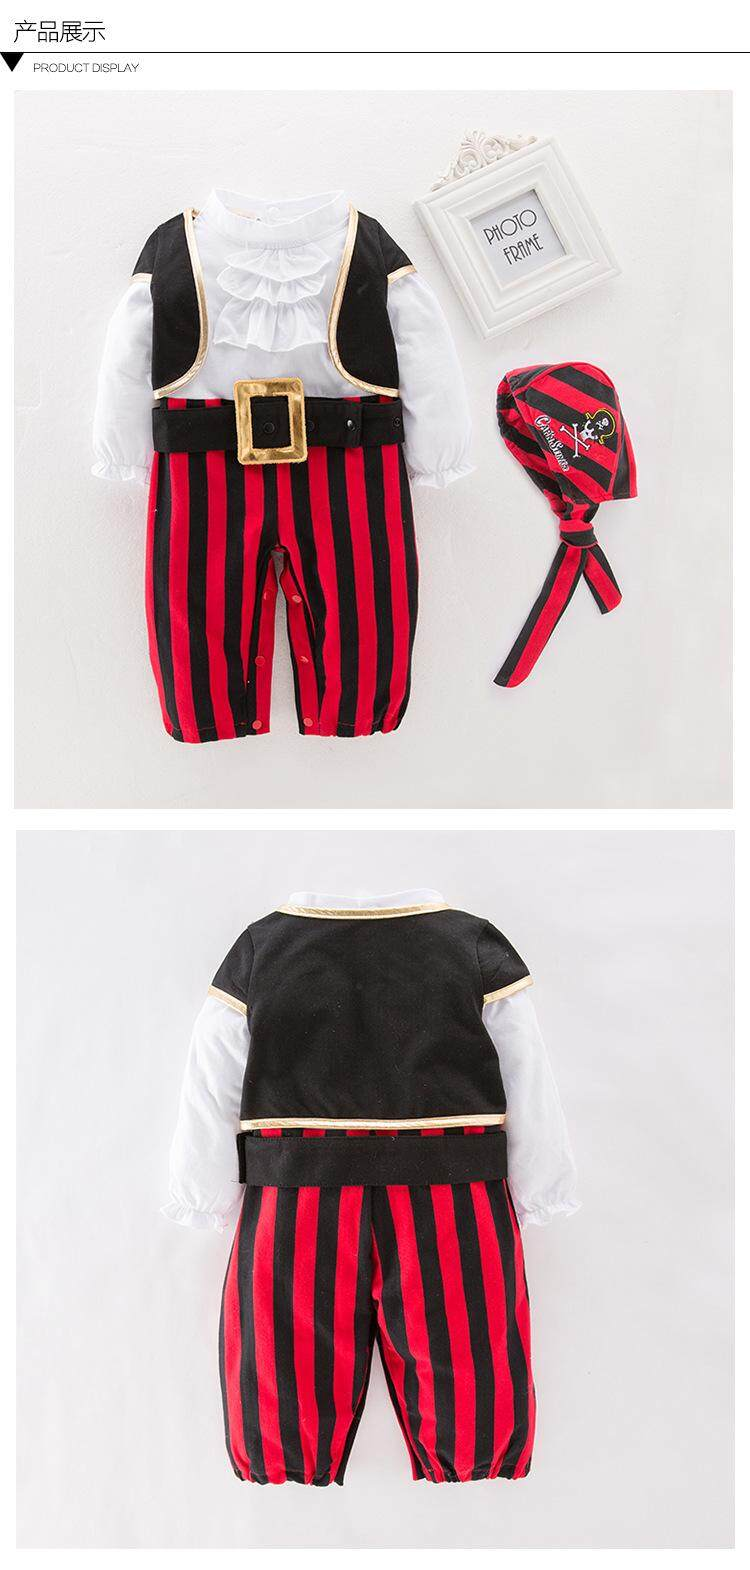 60a4152baa275 Pirate Cosplay Clothes for Baby Boy Halloween Christmas Fancy Clothes  Halloween Costume for Kids Children Pirate Costume